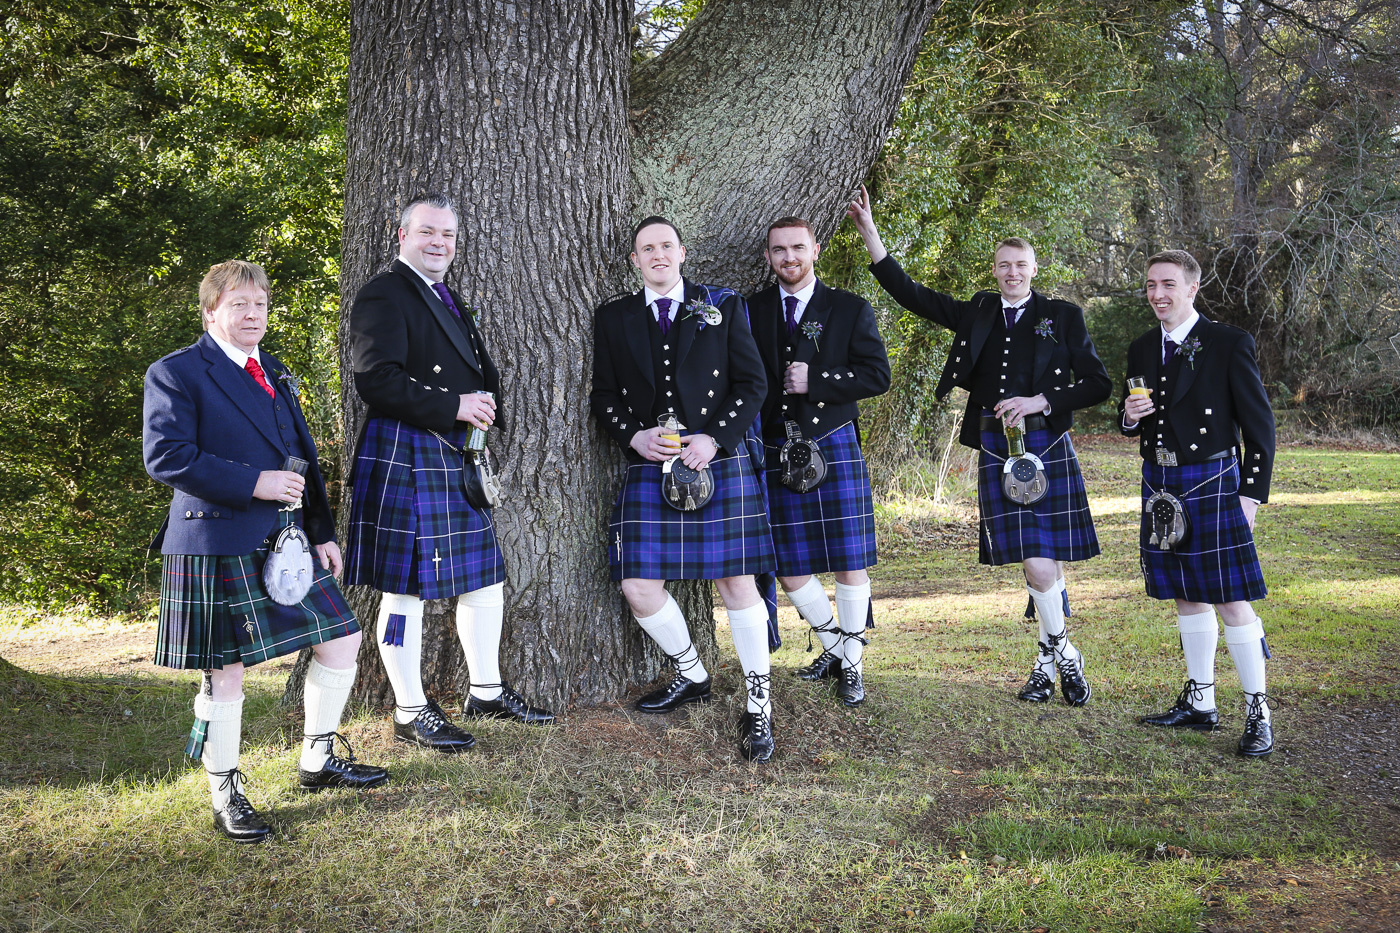 wedding-photography-at-bunchrew-house-inverness-8750